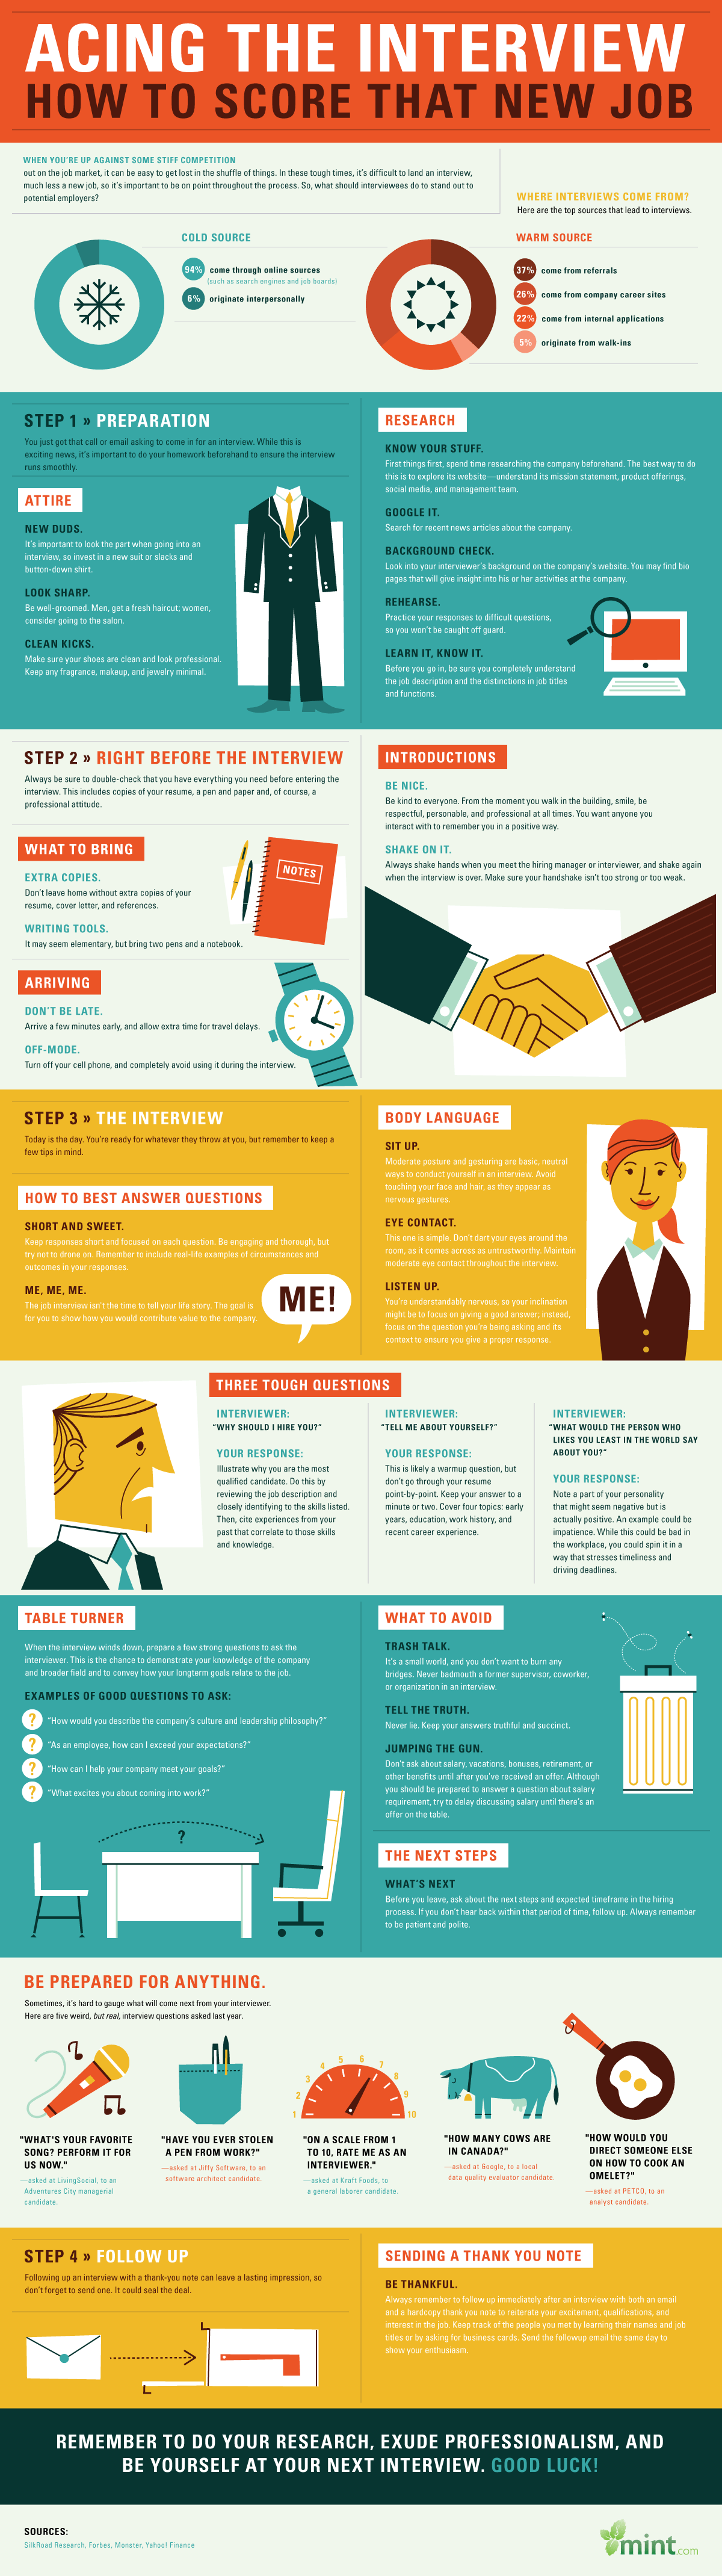 How to Ace the Interview and Secure Your Dream Job [INFOGRAPHIC]